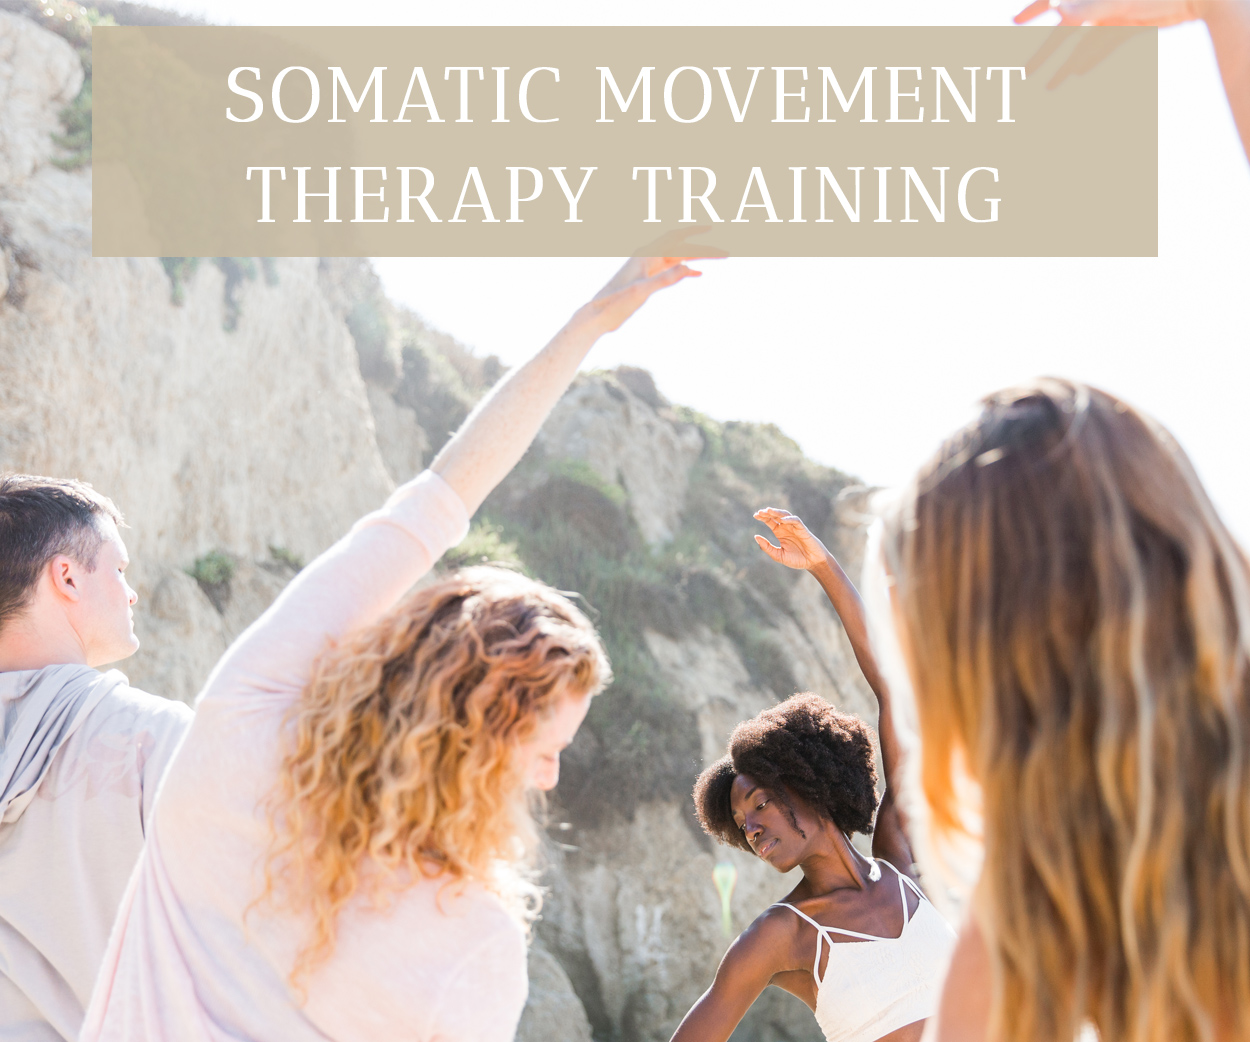 Somatic Movement Therapy Training Dr Scott Lyons